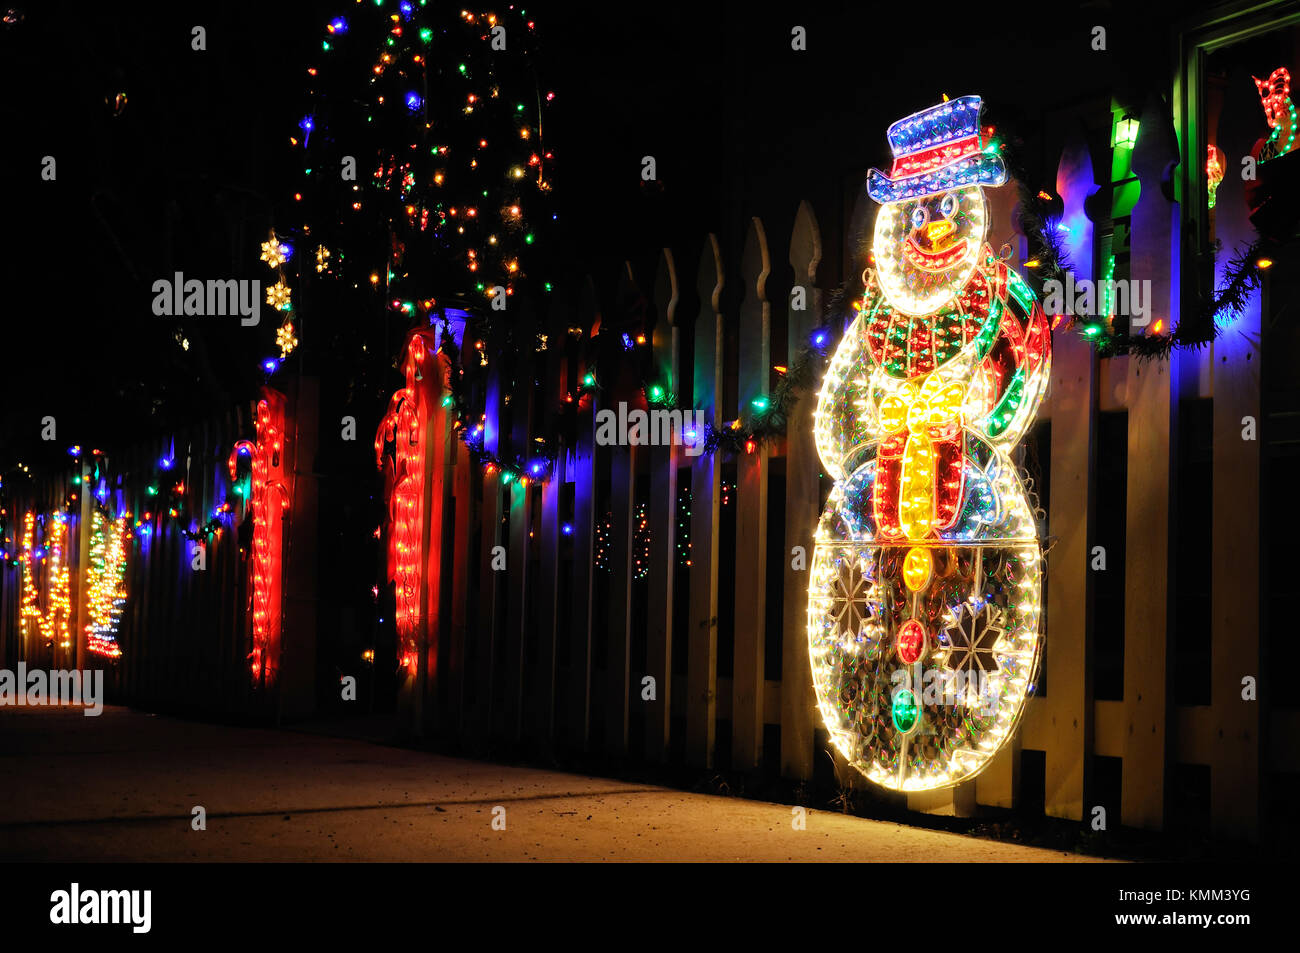 Christmas Lights Outdoor Display With Snowman And Candy Canes On